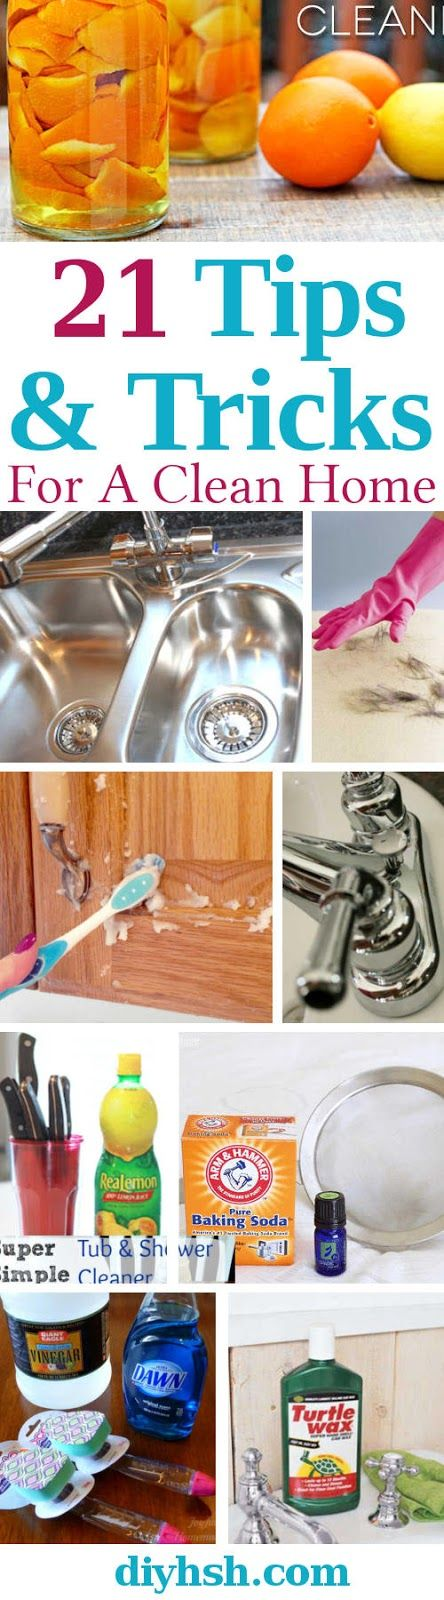 21 Spring Cleaning Tips & Tricks For A Clean Home Year Round. #CleaningHacks #CleaningTips #Cleaning #CleanHome #Organizing #Home #Family